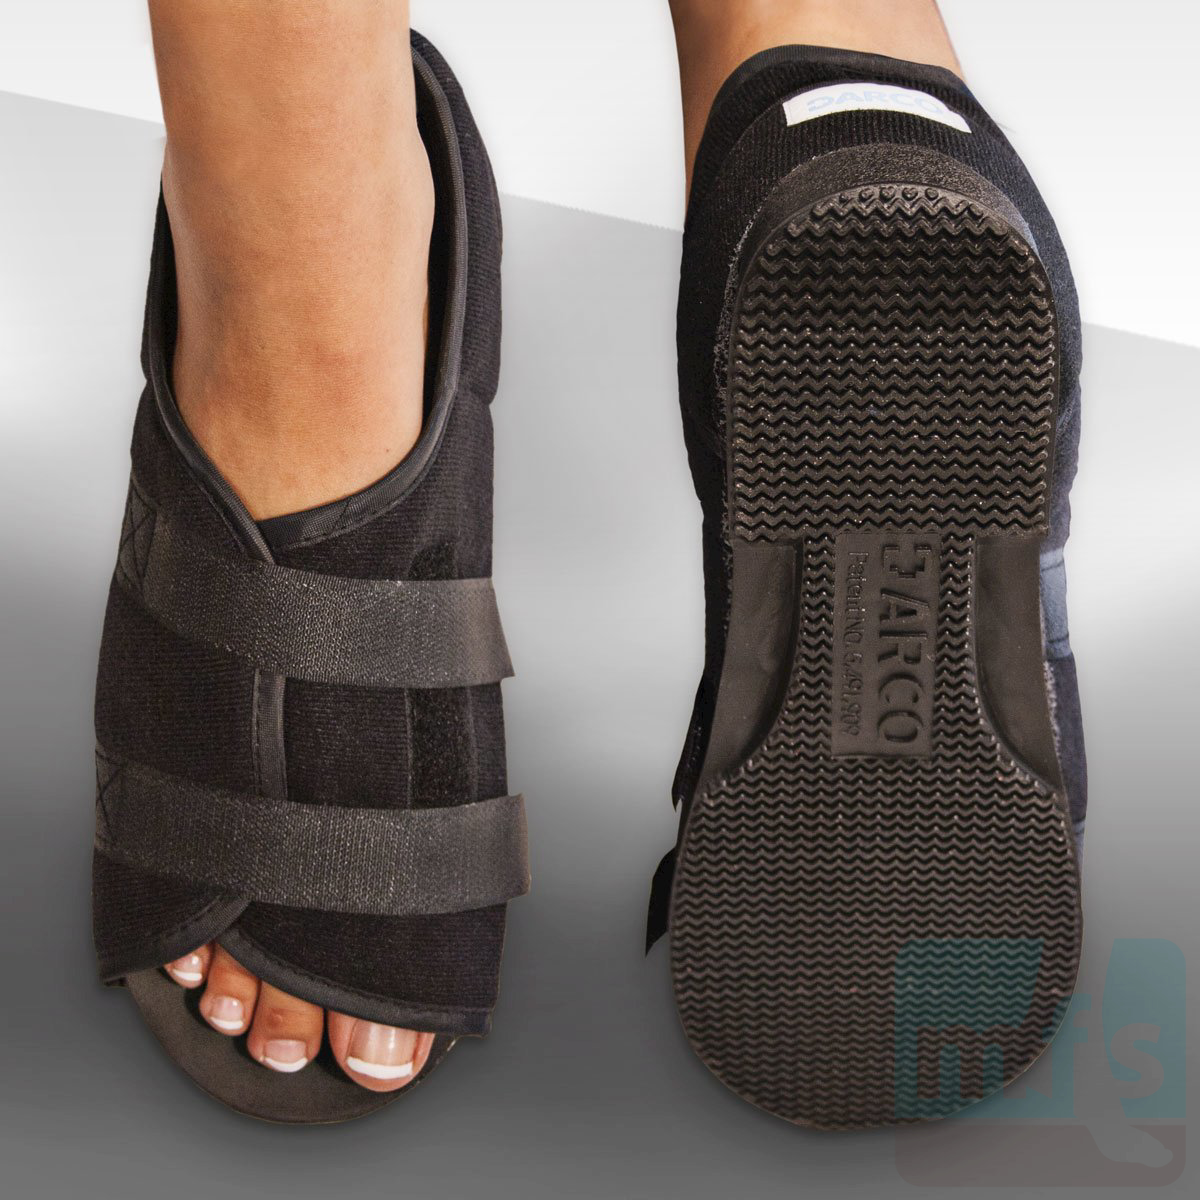 Best Running Shoes For Broken Ankle